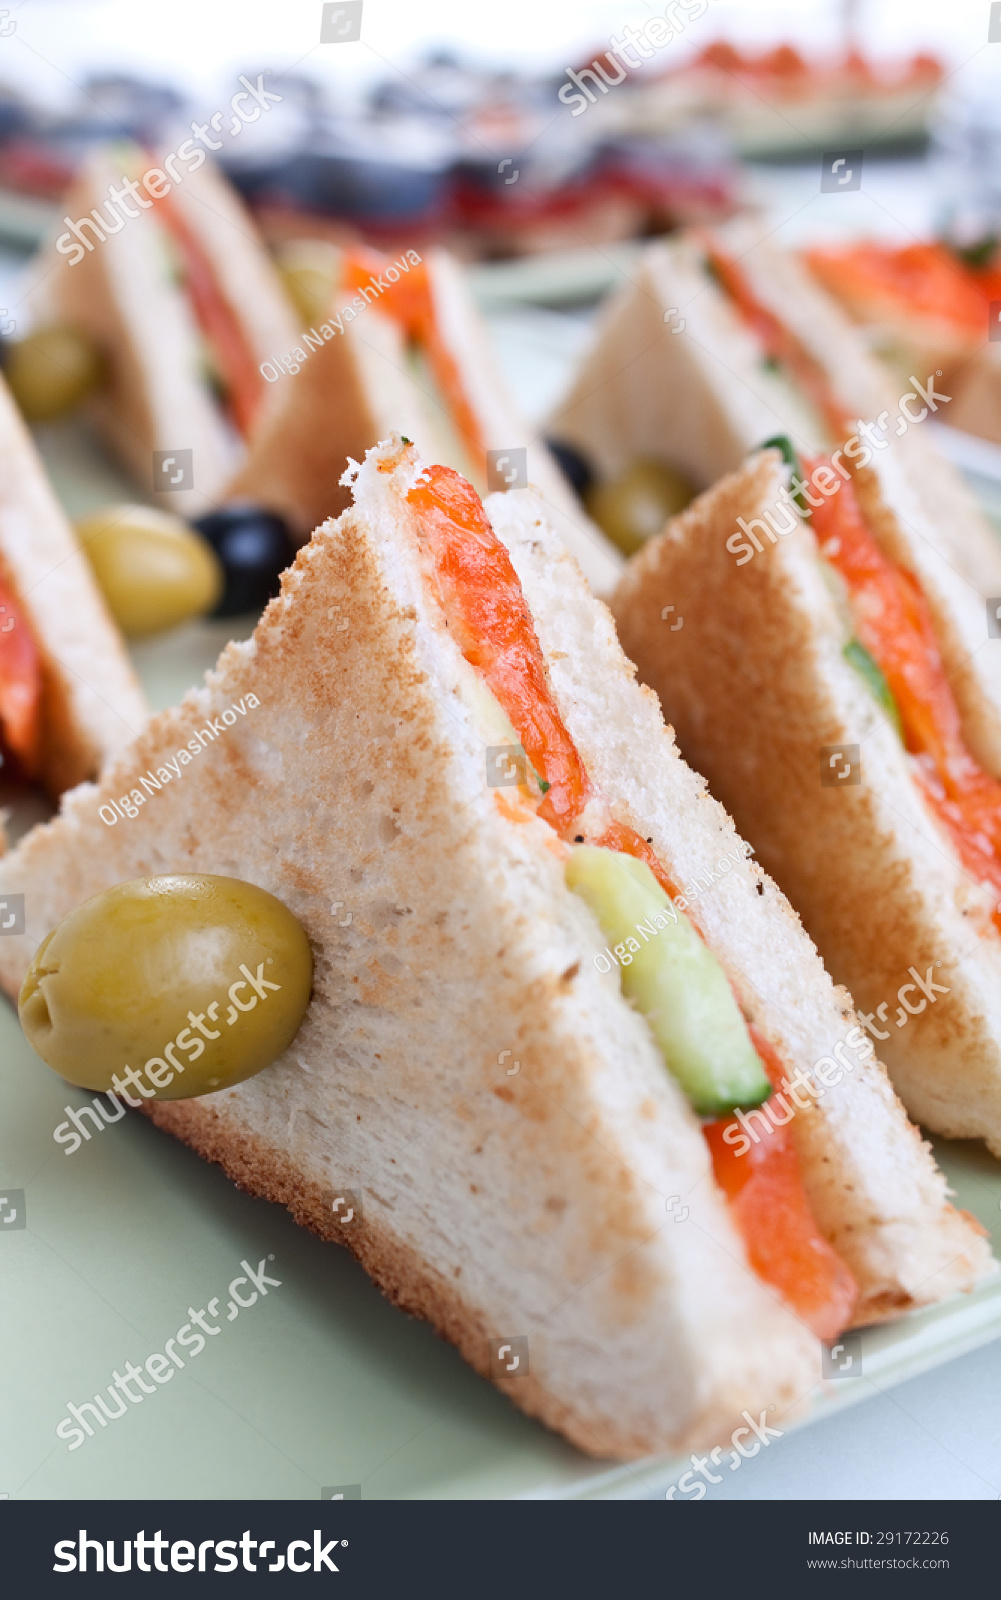 Club Tea Sandwich With Salmon And Cucumbers On White Bread Stock Photo ...